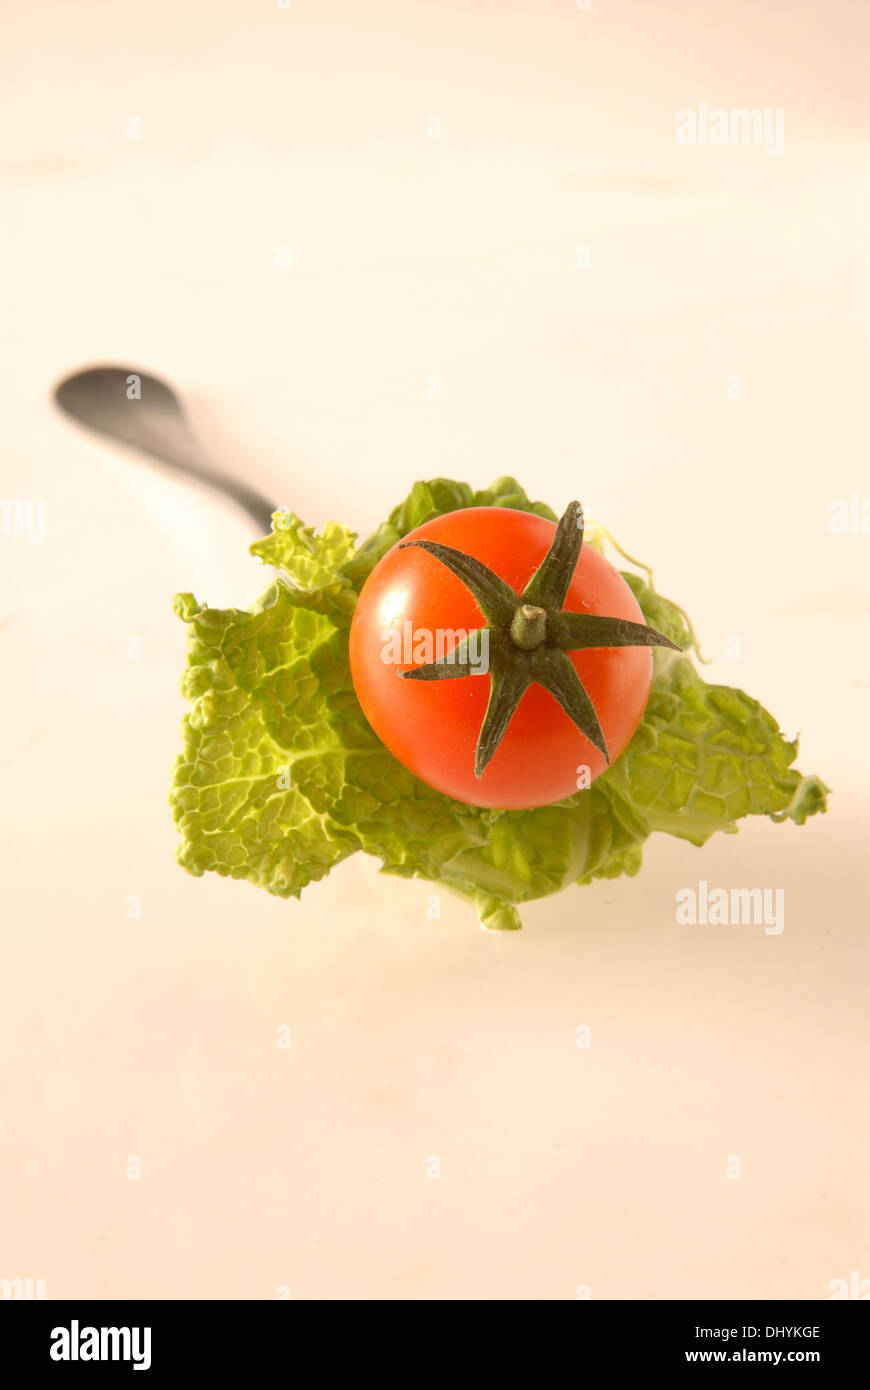 Fork with pinned lettuce and cherry tomato on white background - Stock Image